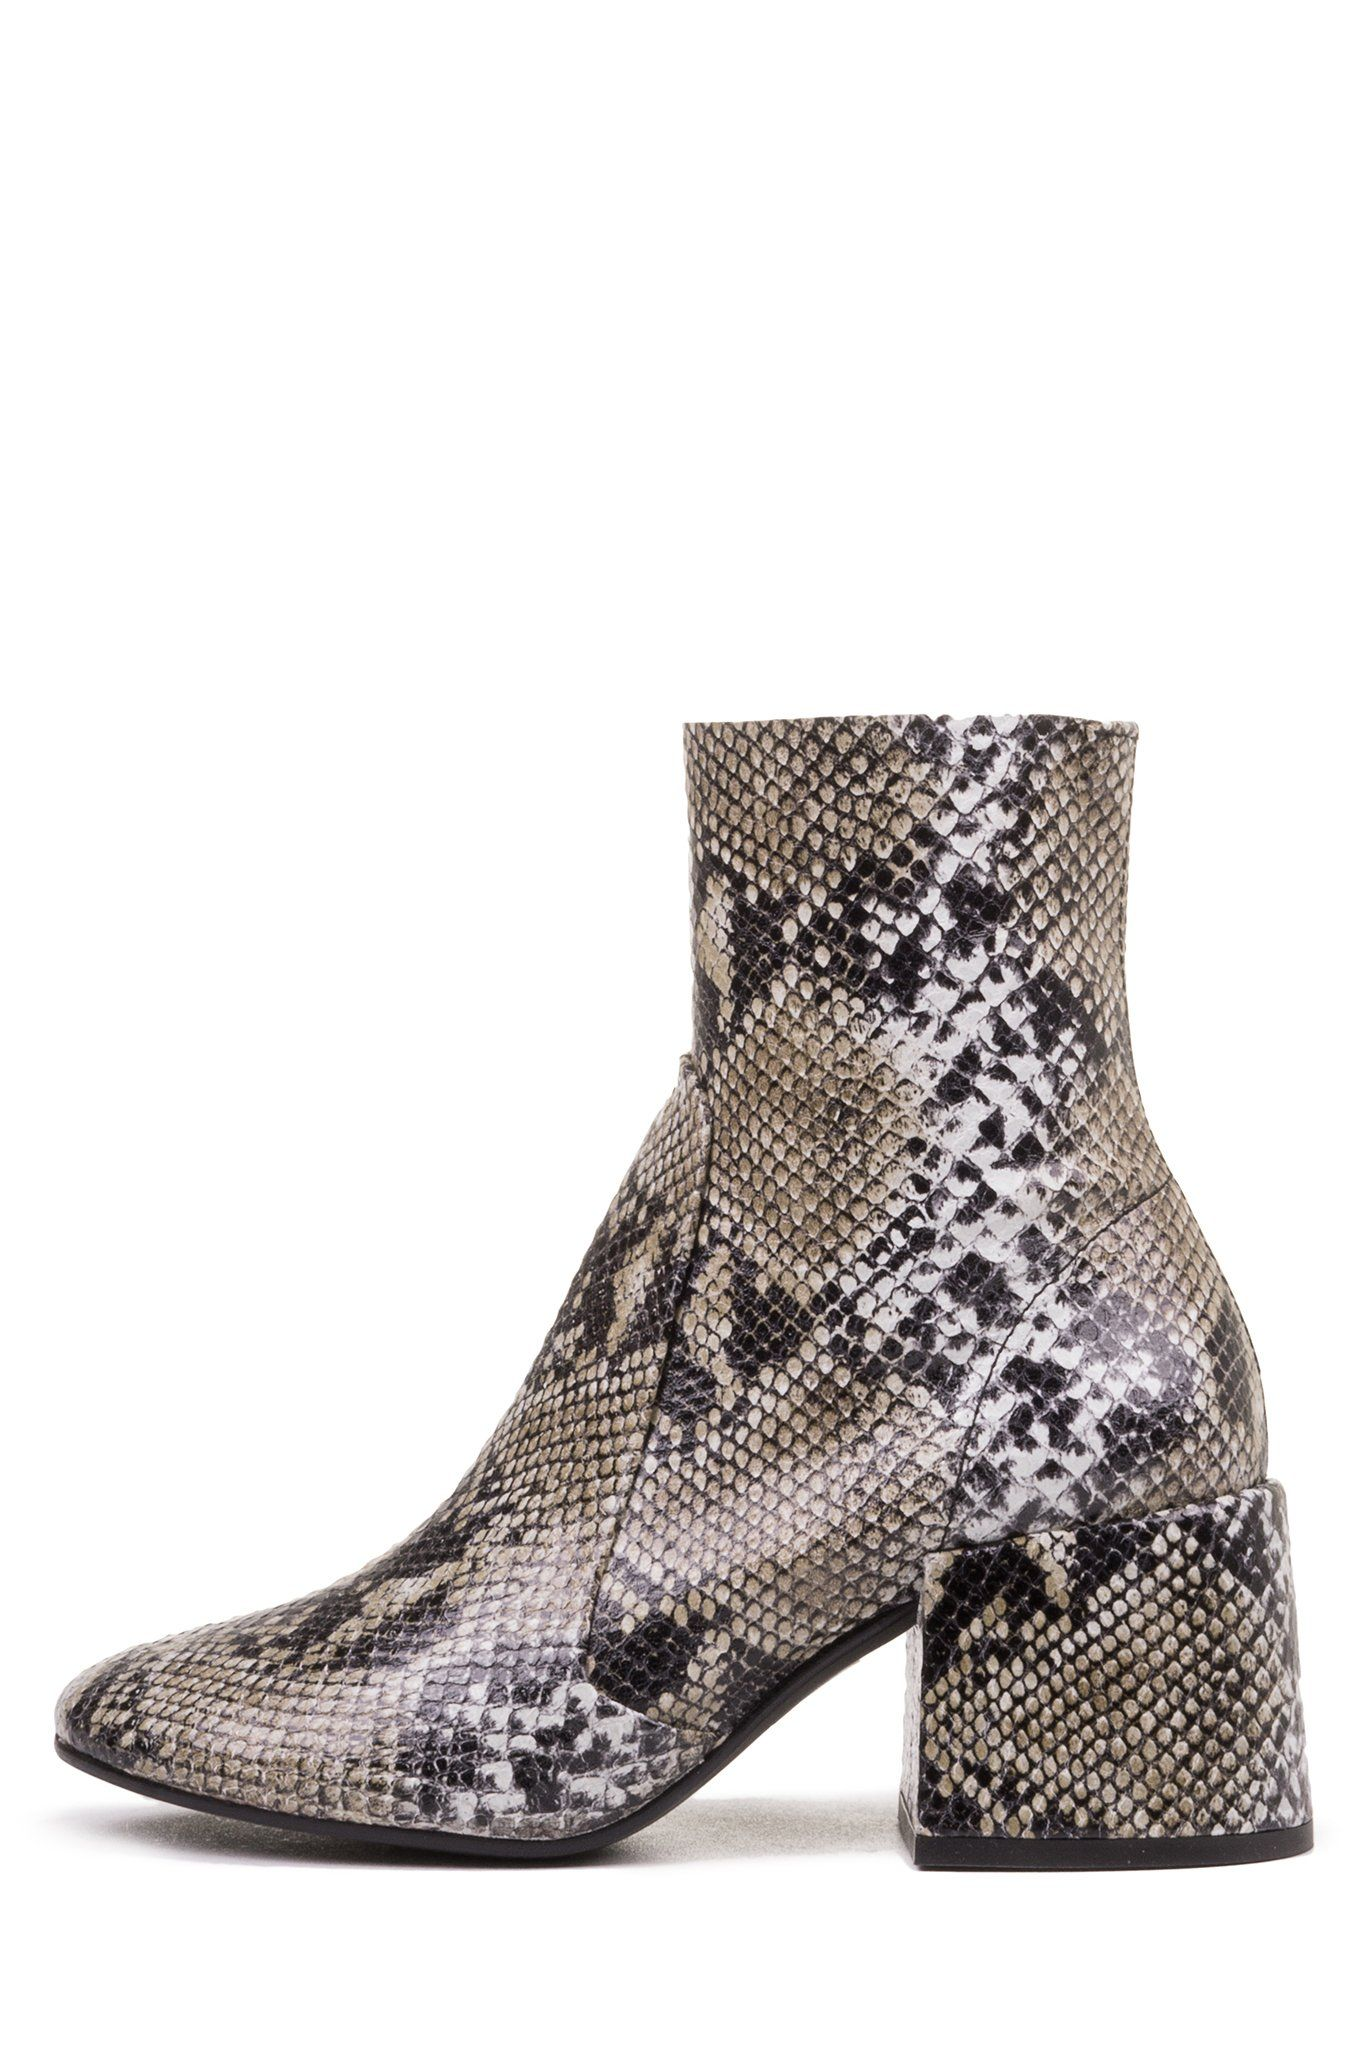 536e0e369321d Round toe block heeled boot. - Fits true to size - Measurements taken from  size 36 EU/ 6 US - 2.5